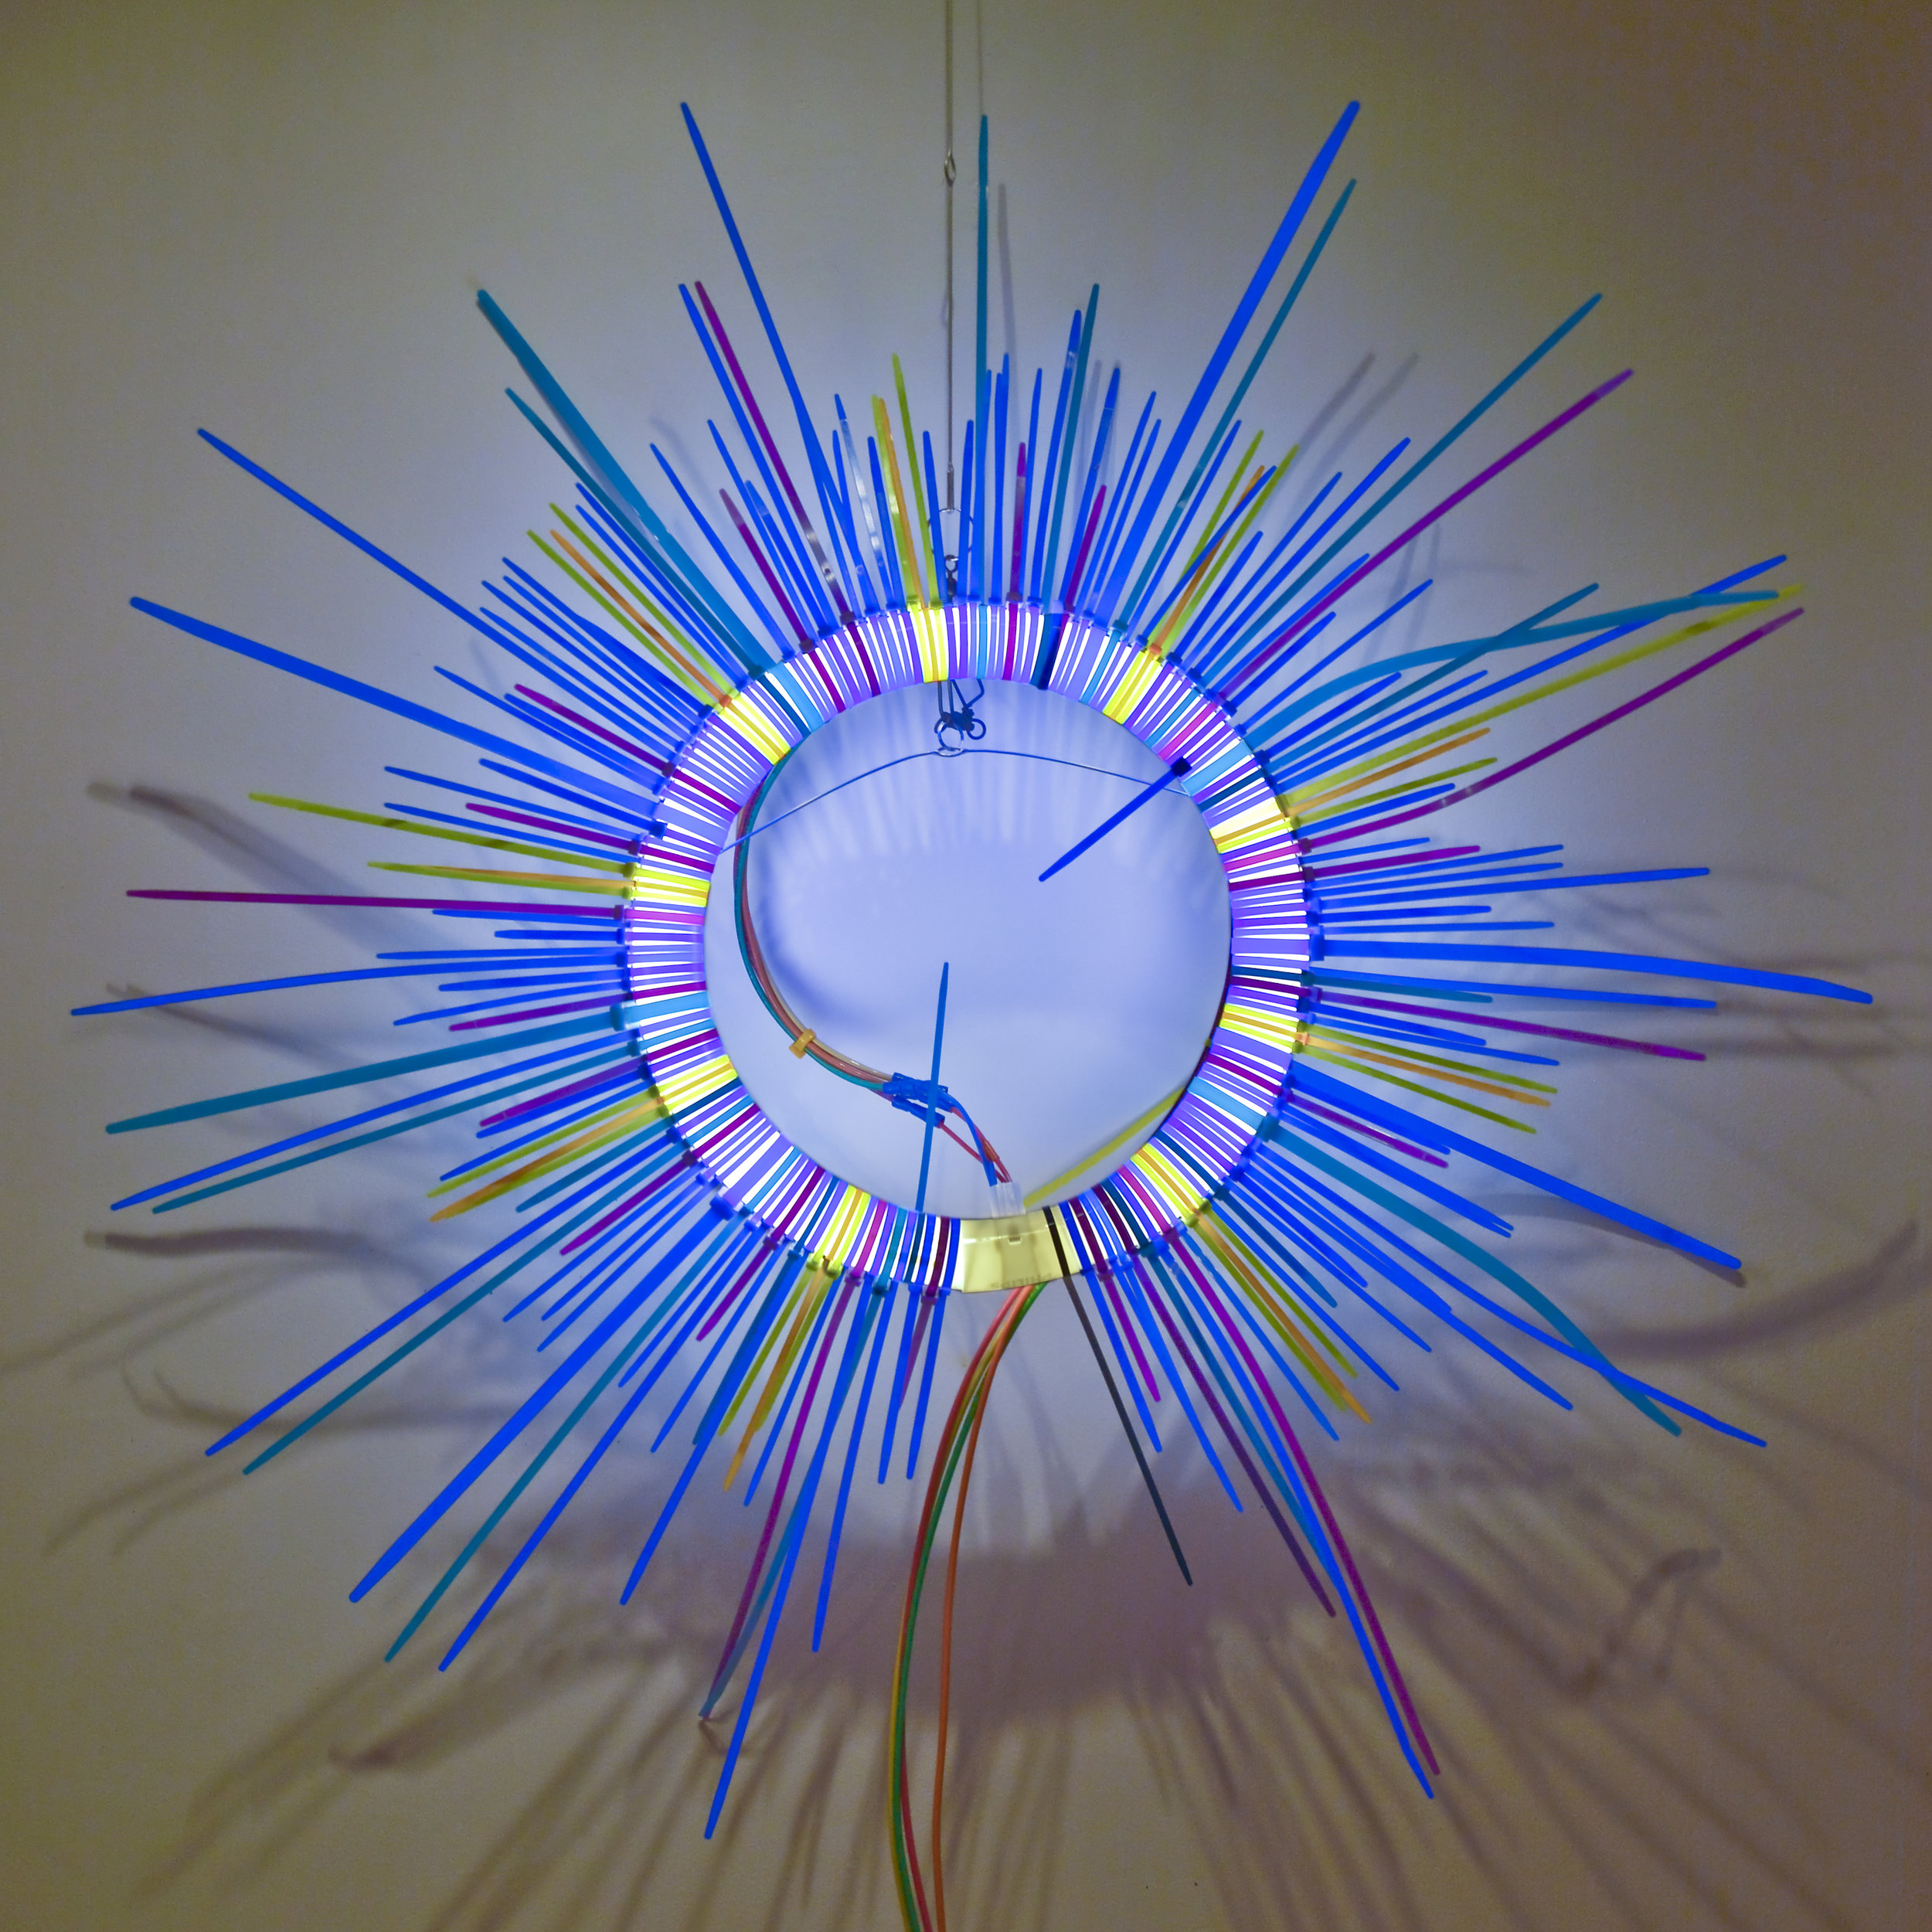 Blue Ring   Fluorescent Lamp, color snap ties, loom heddles and fishing spinners and color wire 12 in lamp diameter 24 in overall